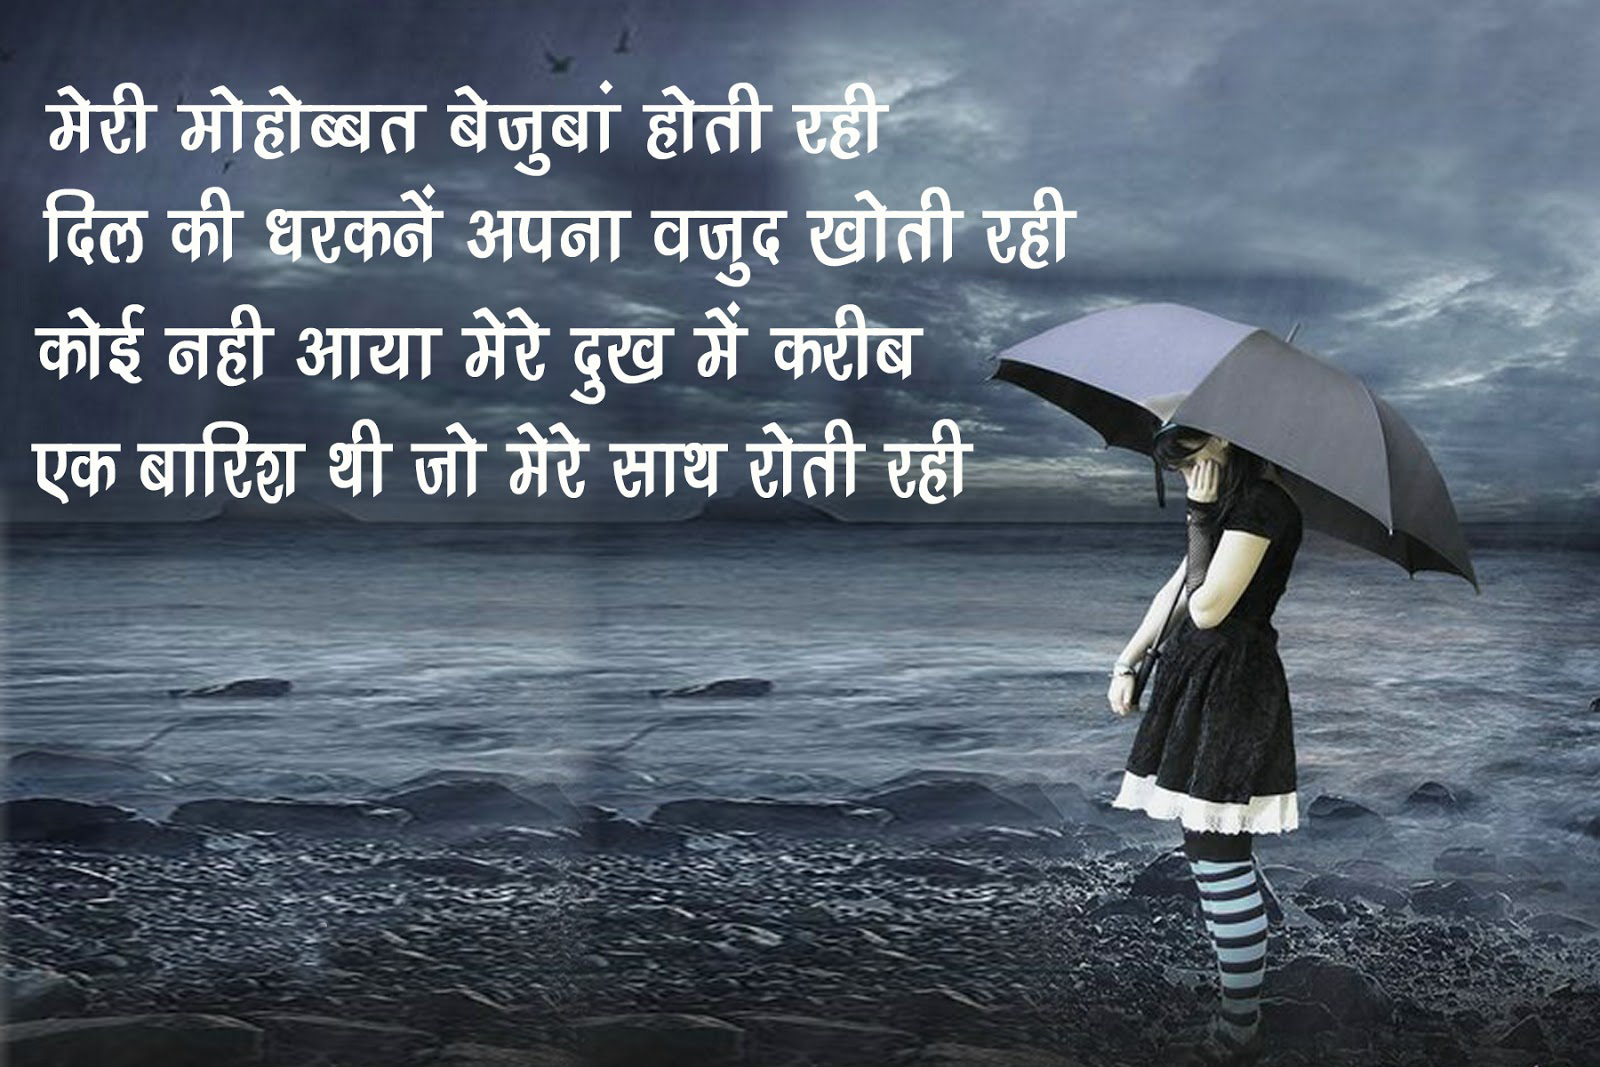 Free Download Hindi Shayari Hd Wallpapers Download Get